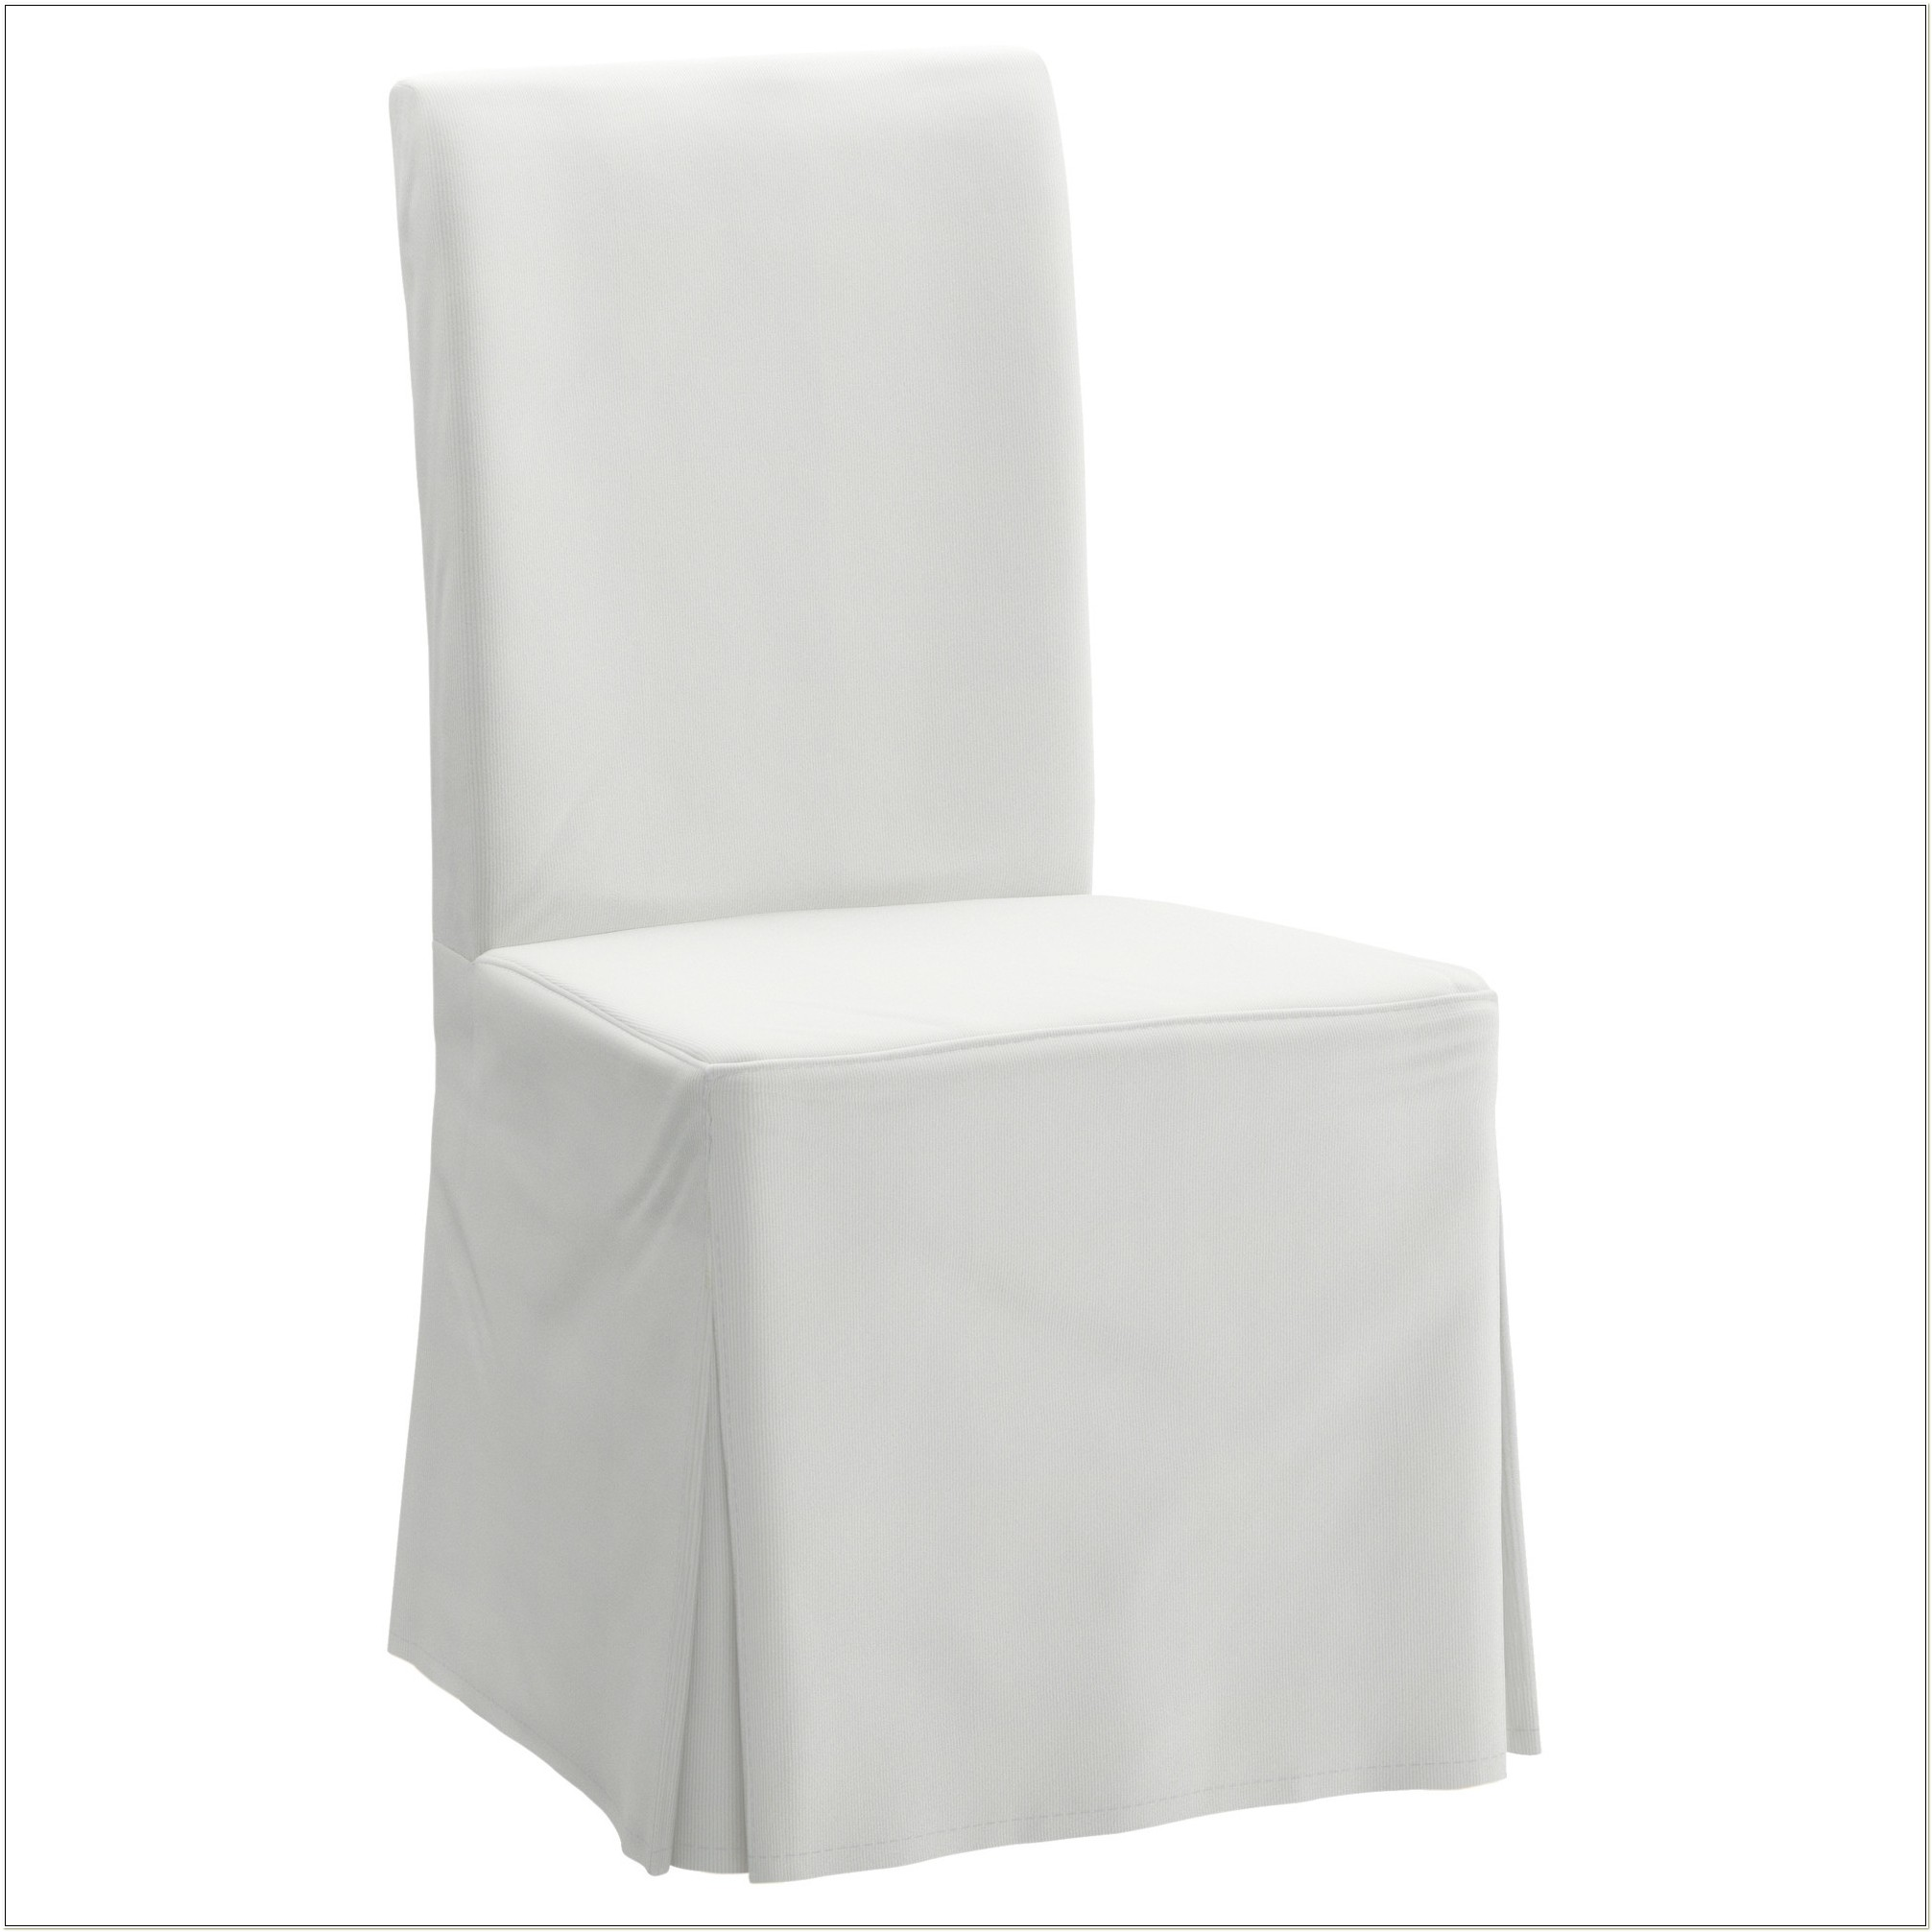 Ikea Dining Chair Covers Uk